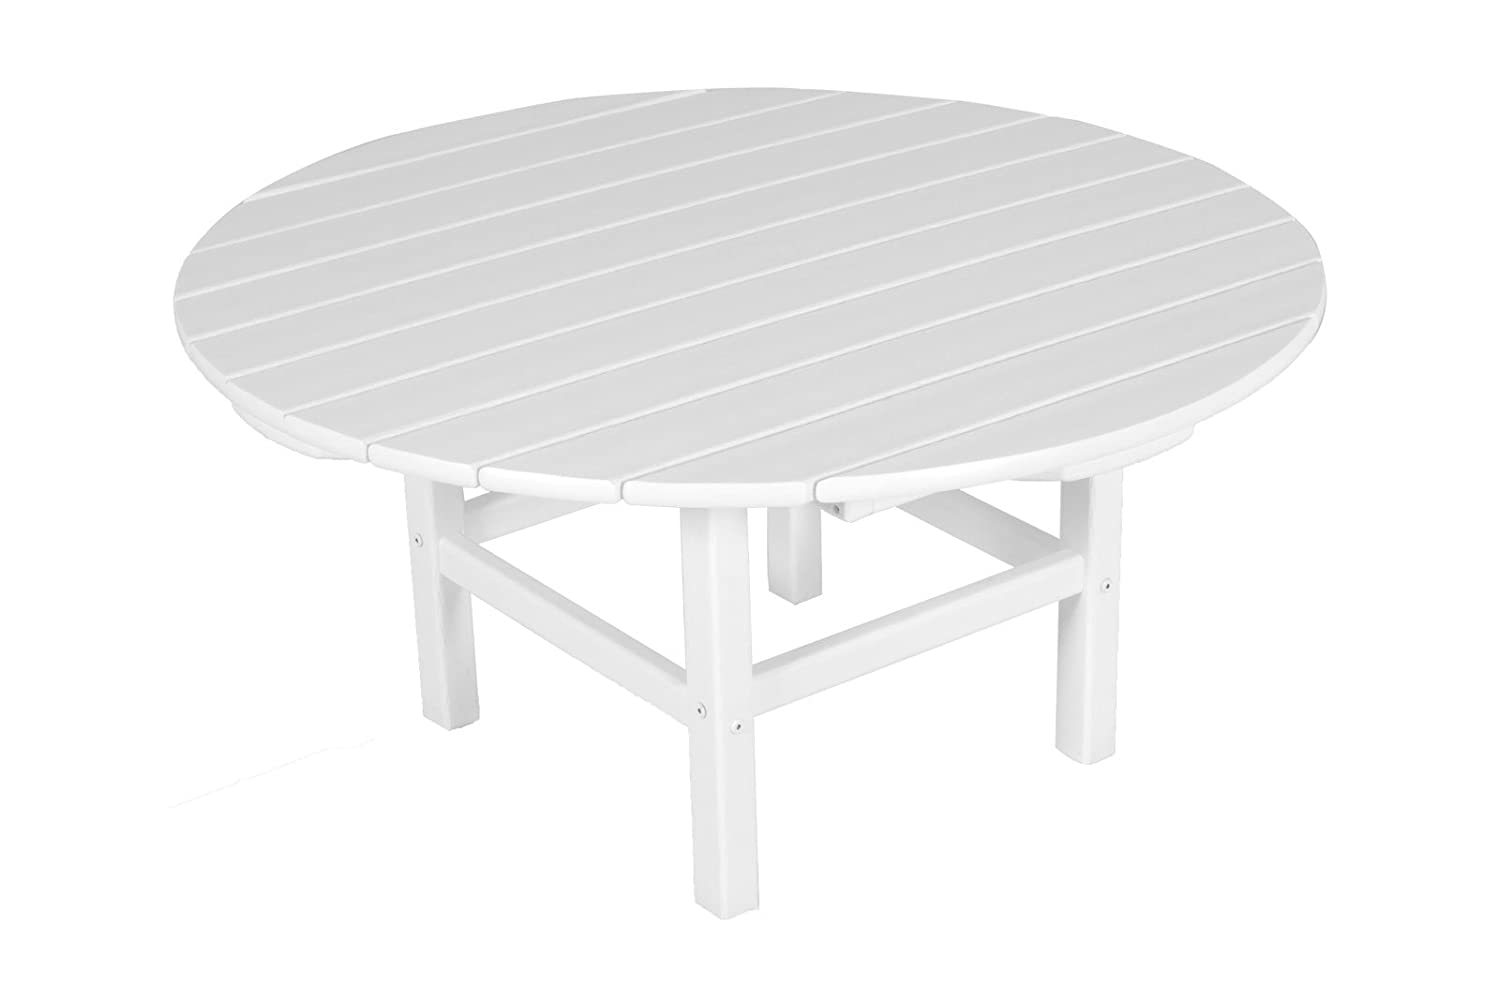 Amazoncom POLYWOOD RCTWH Round Conversation Table White - Polywood coffee table